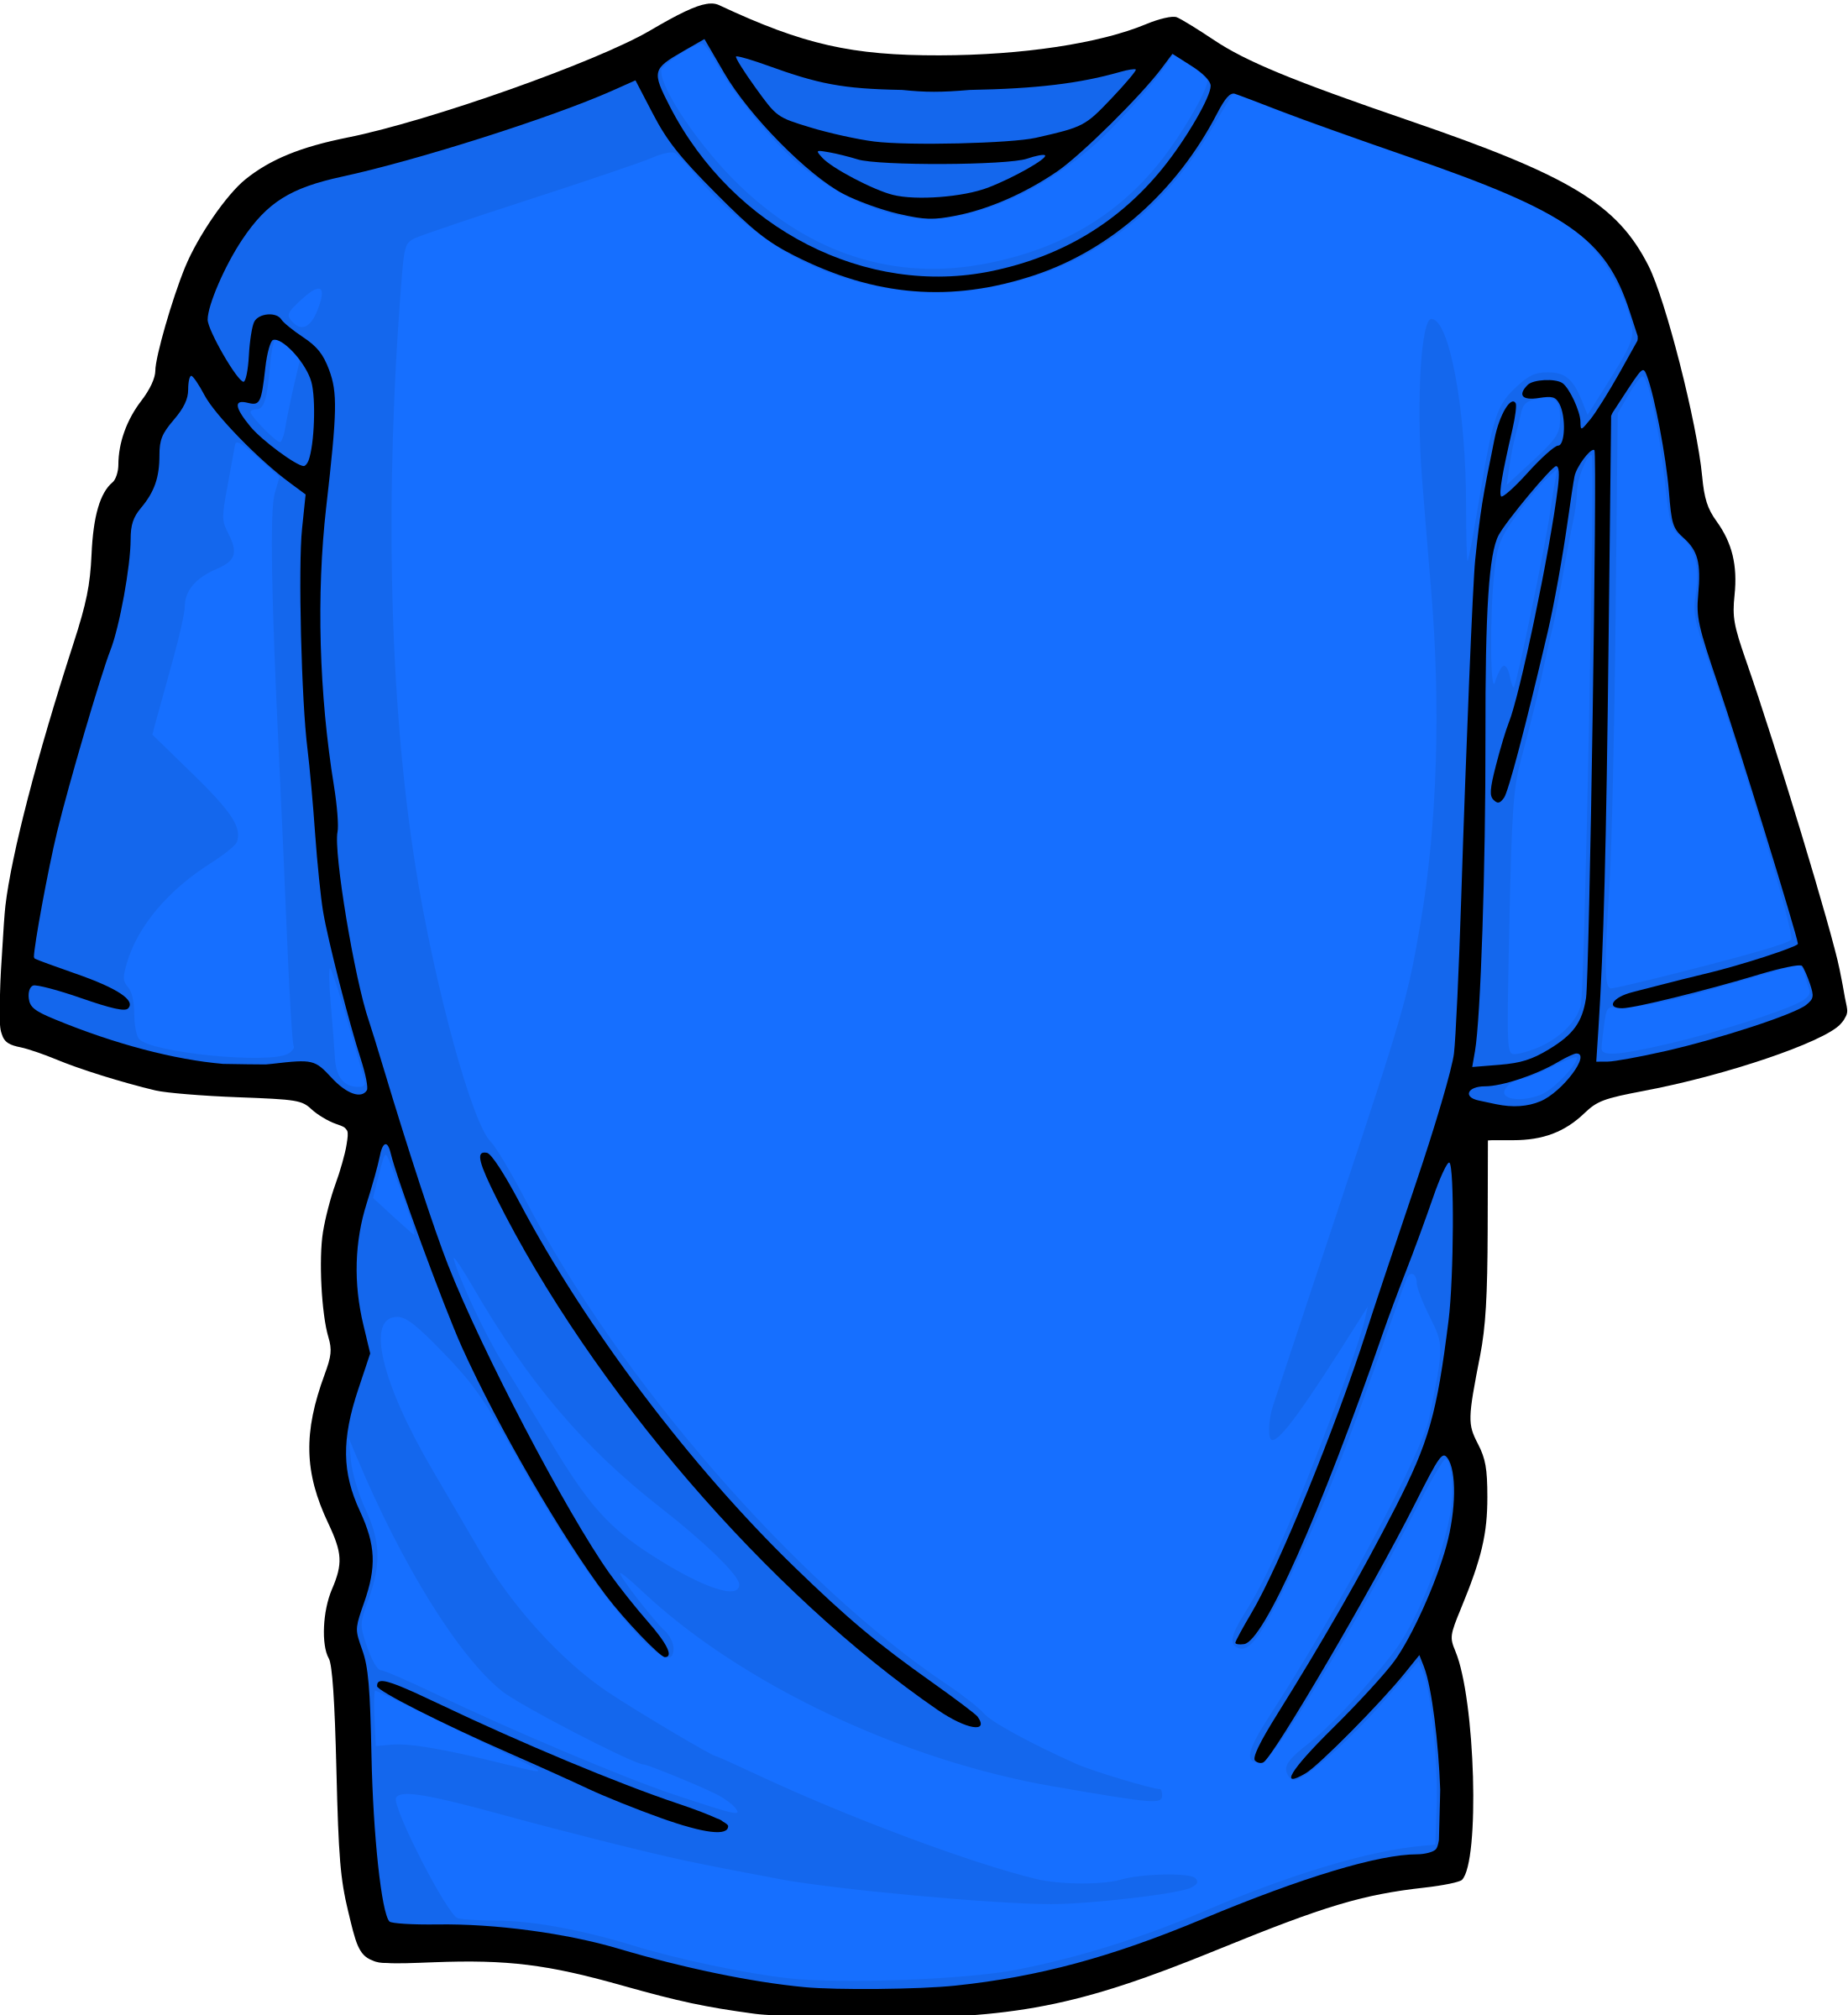 Free Clothing Clipart Page 6 1freedownloads.